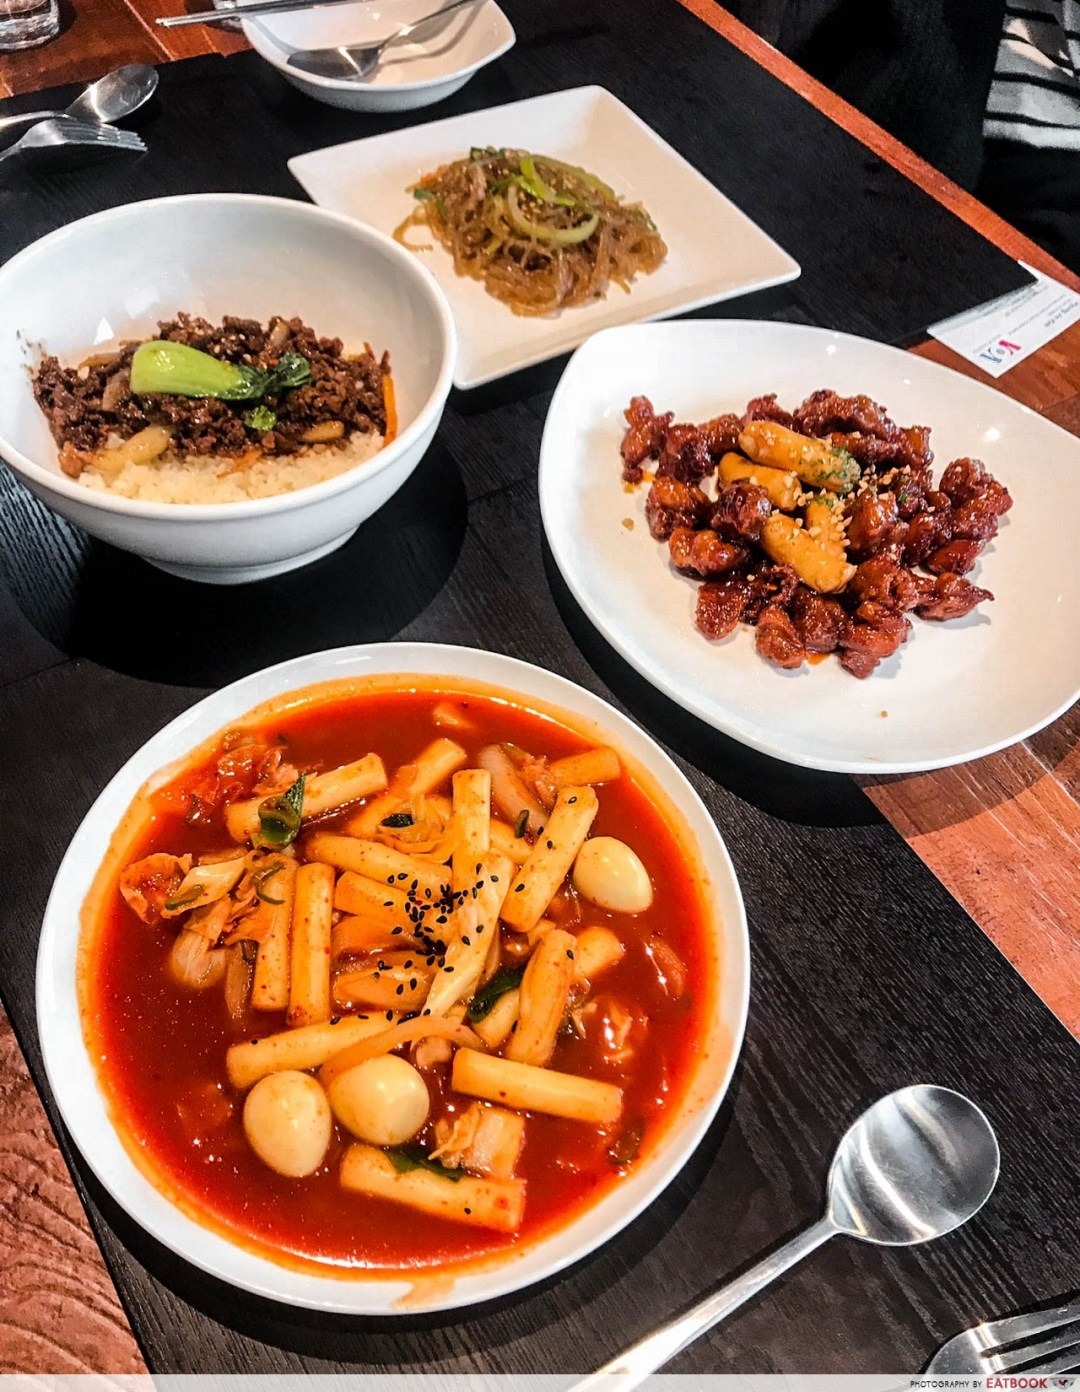 Halal Food places In Seoul - Halal Kitchen